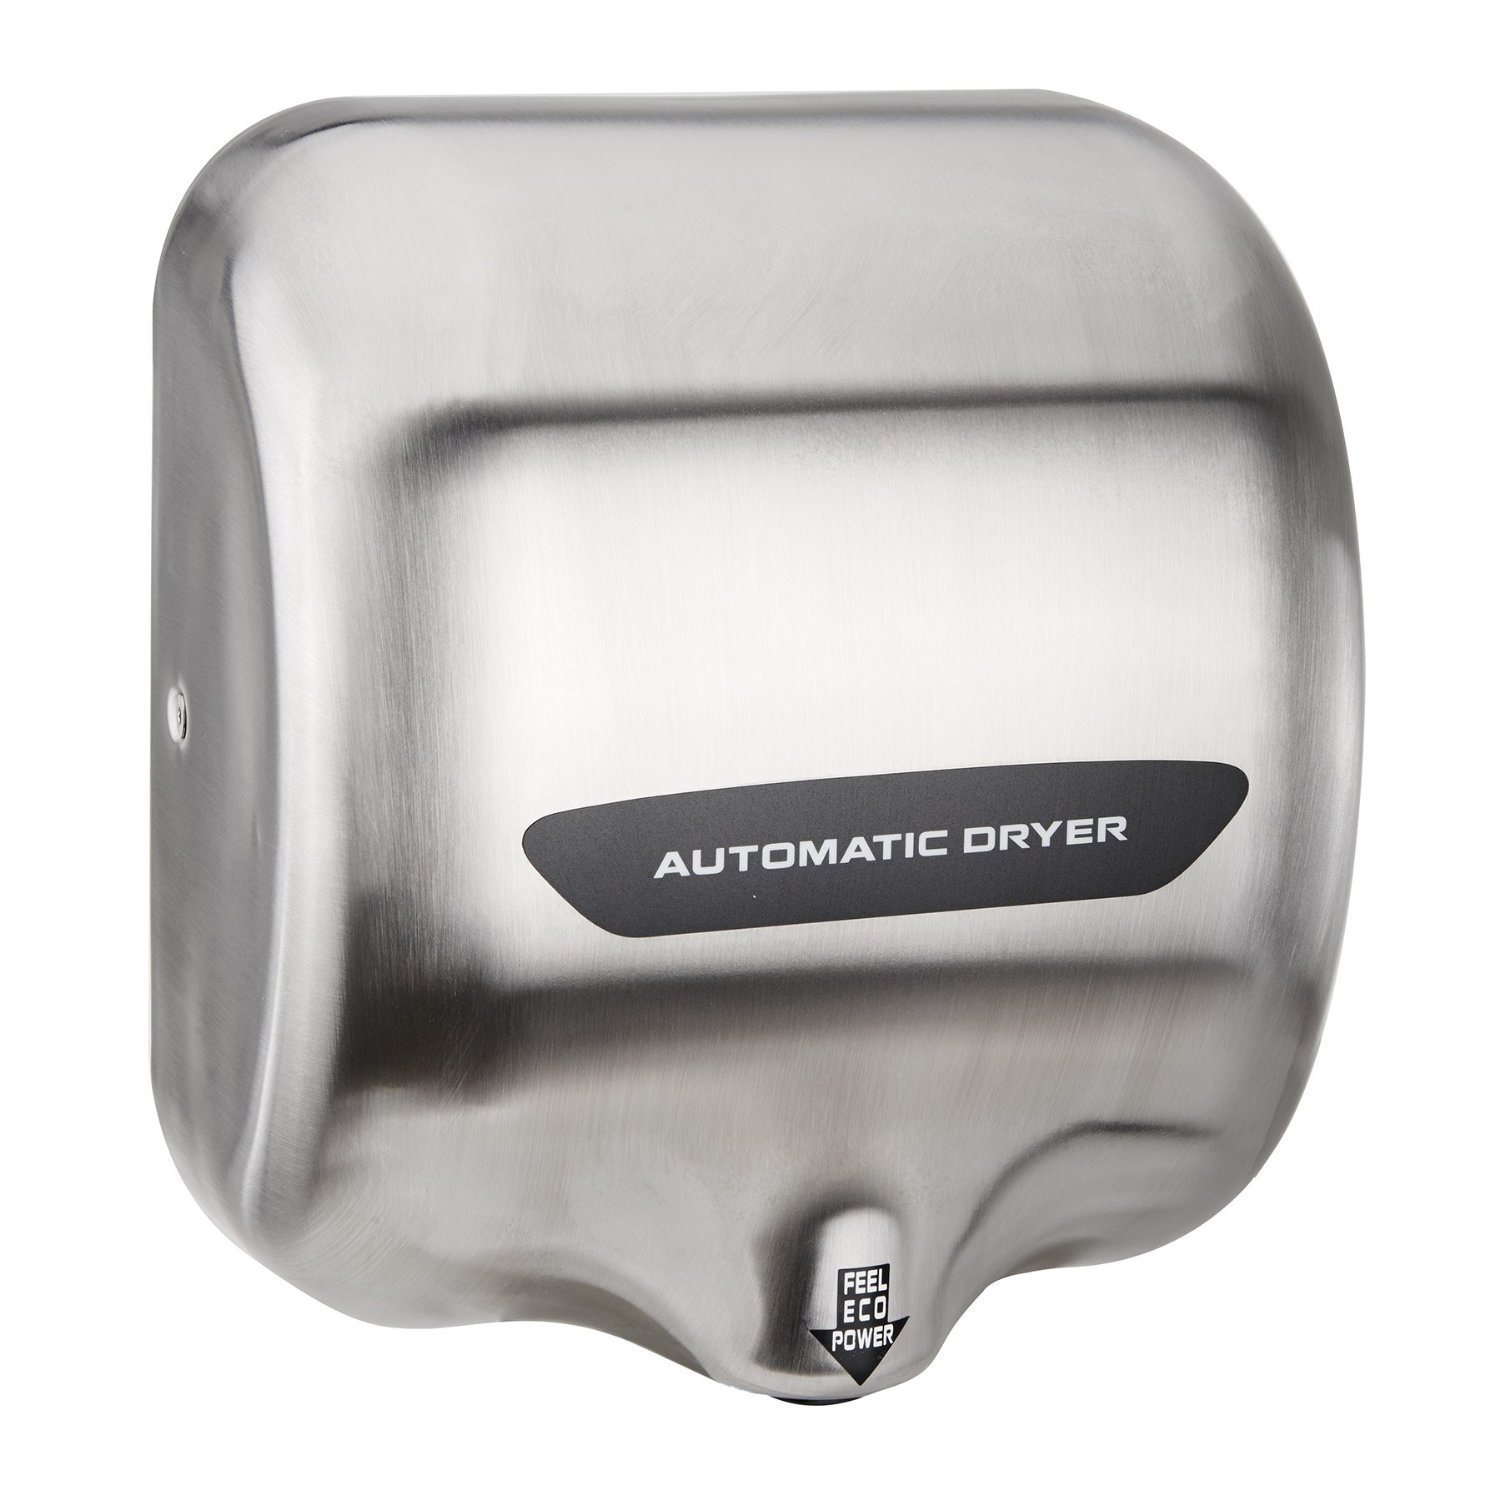 Tek Motion Premium Quality Heavy Duty 1800w Stainless Steel Commercial Hand Dryer Durable by Tek Motion